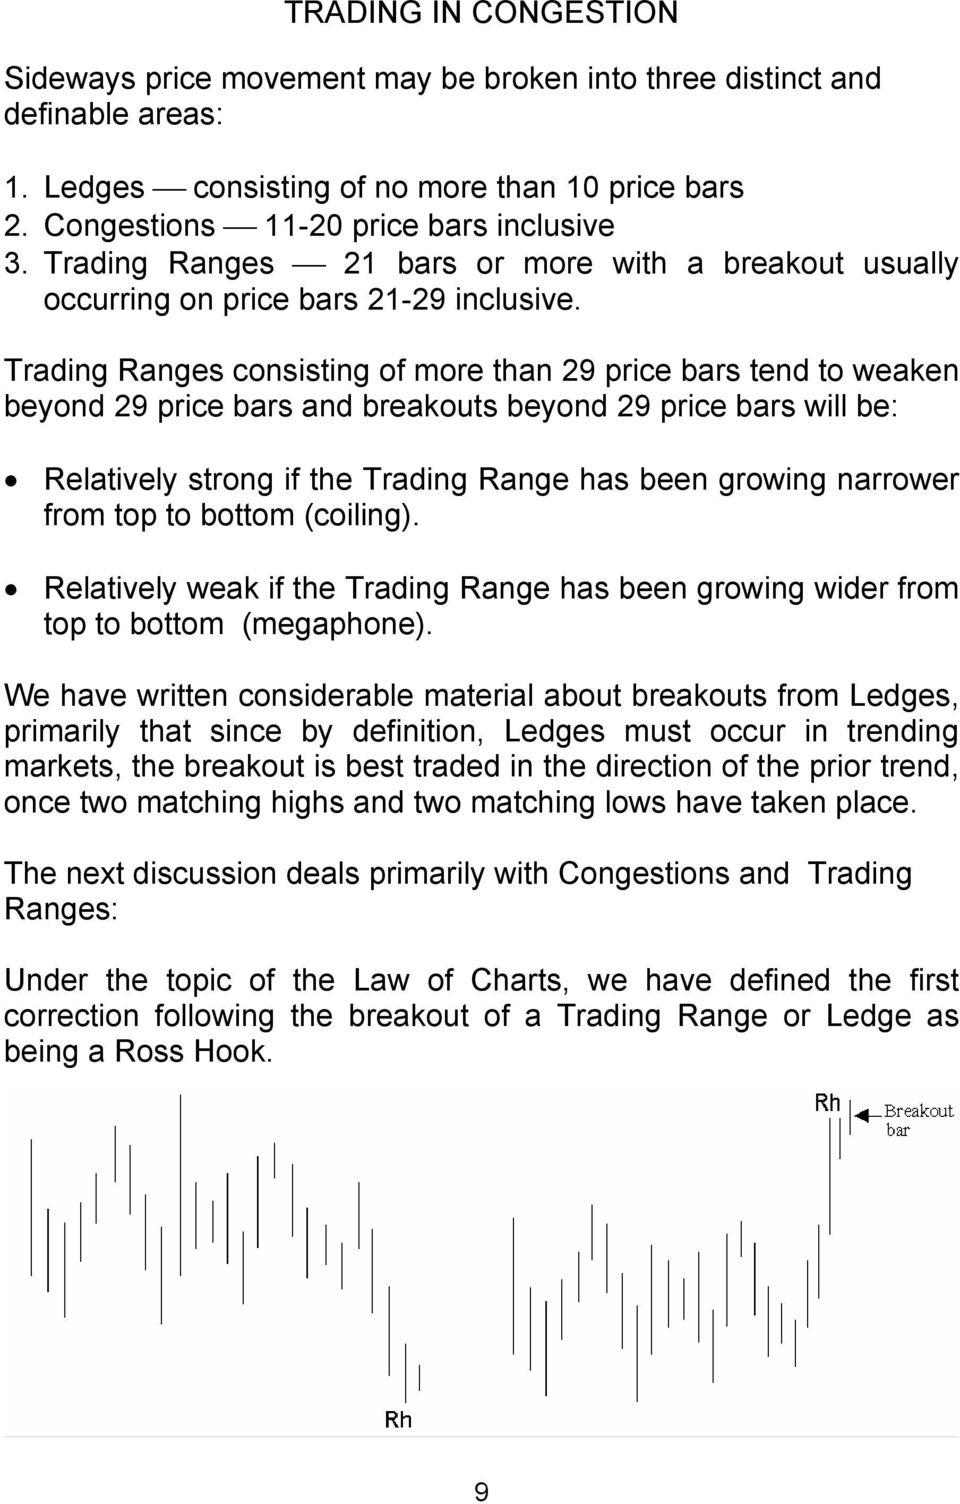 Trading Ranges consisting of more than 29 price bars tend to weaken beyond 29 price bars and breakouts beyond 29 price bars will be: Relatively strong if the Trading Range has been growing narrower